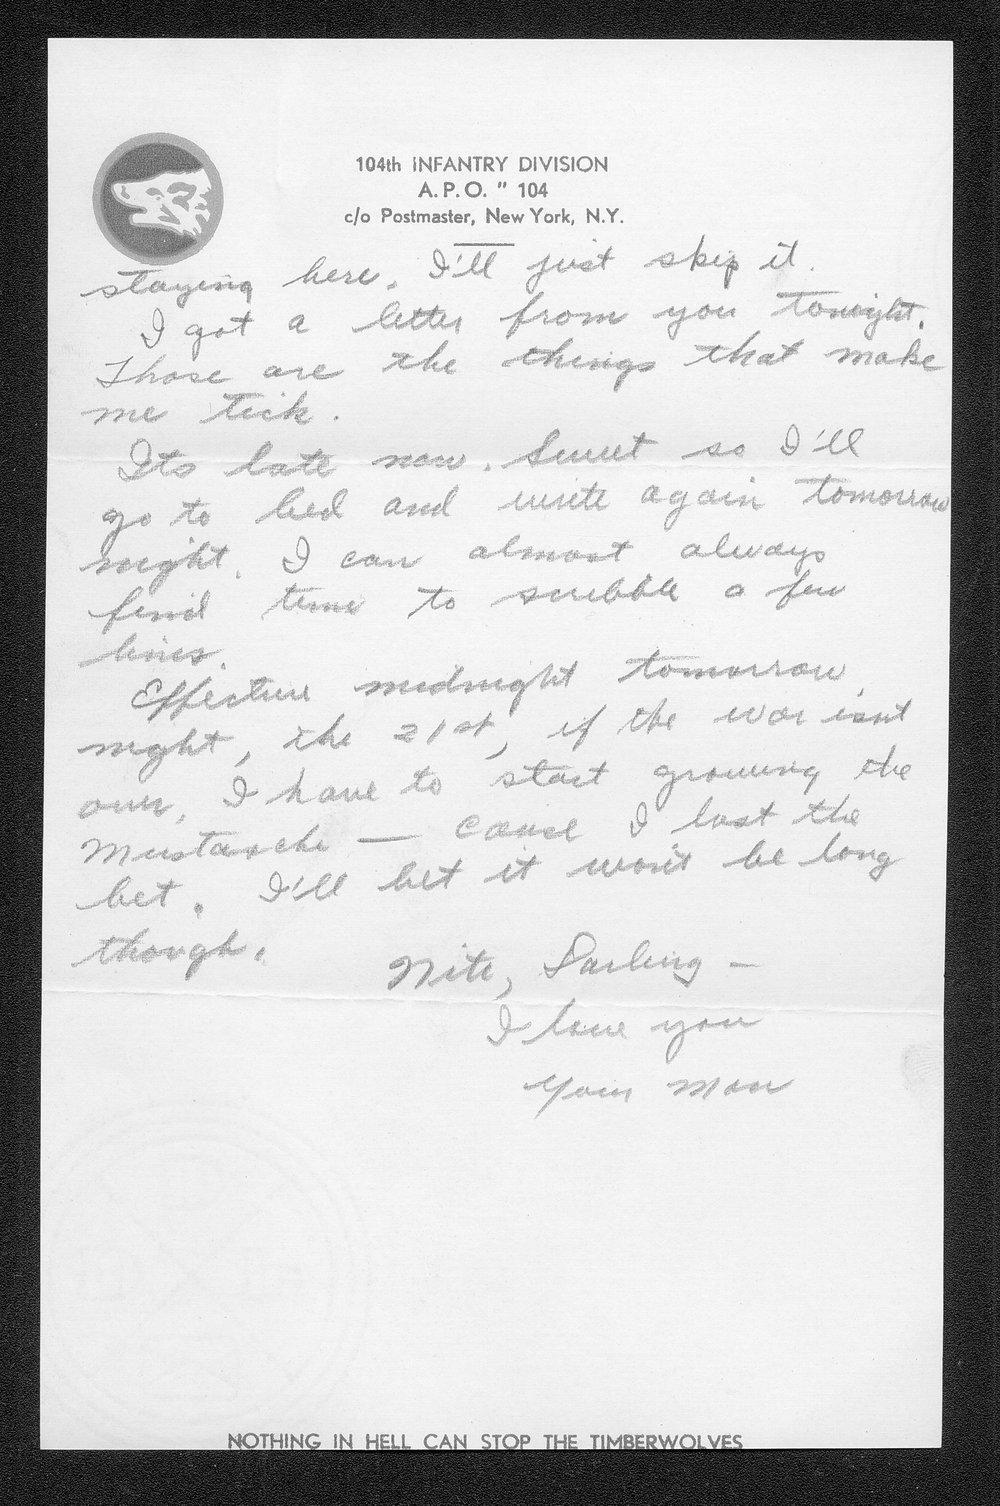 Letters from Hilton Parris Mize to his wife Irene Rosenberger Mize - 7